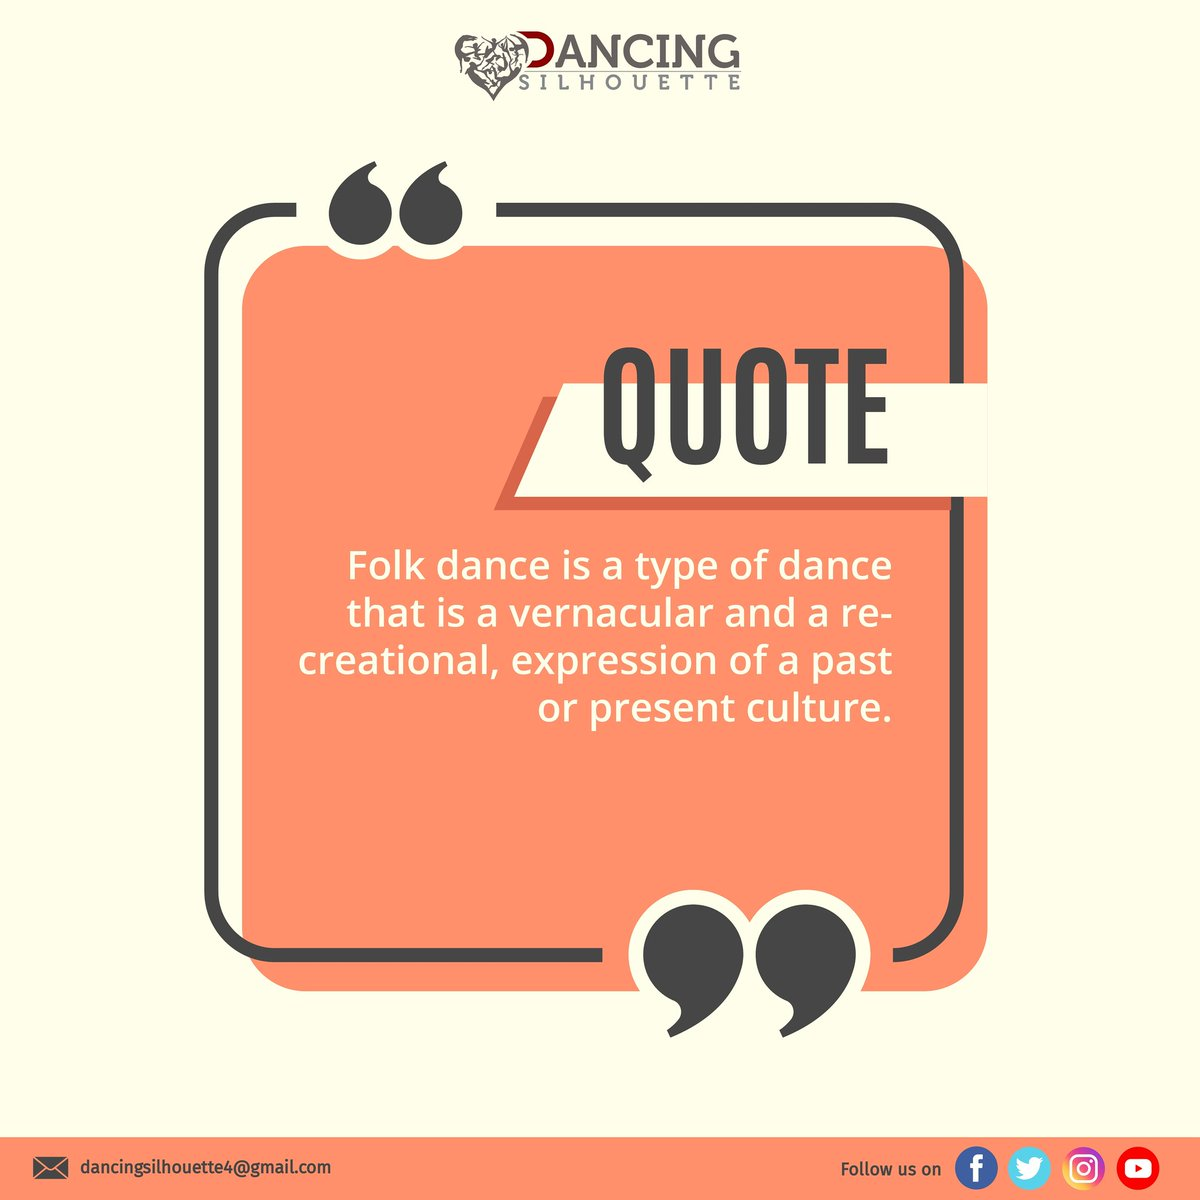 Did you know? Folk dance is a type of dance that is a vernacular and a recreational, expression of a past or present culture. . . Follow our YouTube channel for more updates. https://www.youtube.com/channel/UCNLRuKNkB7Eu-YN9A0hCIPg … For any queries contact - dancingsilhouette4@gmail.com . . #folkdance #dancefactspic.twitter.com/Vz8h9OXdpv